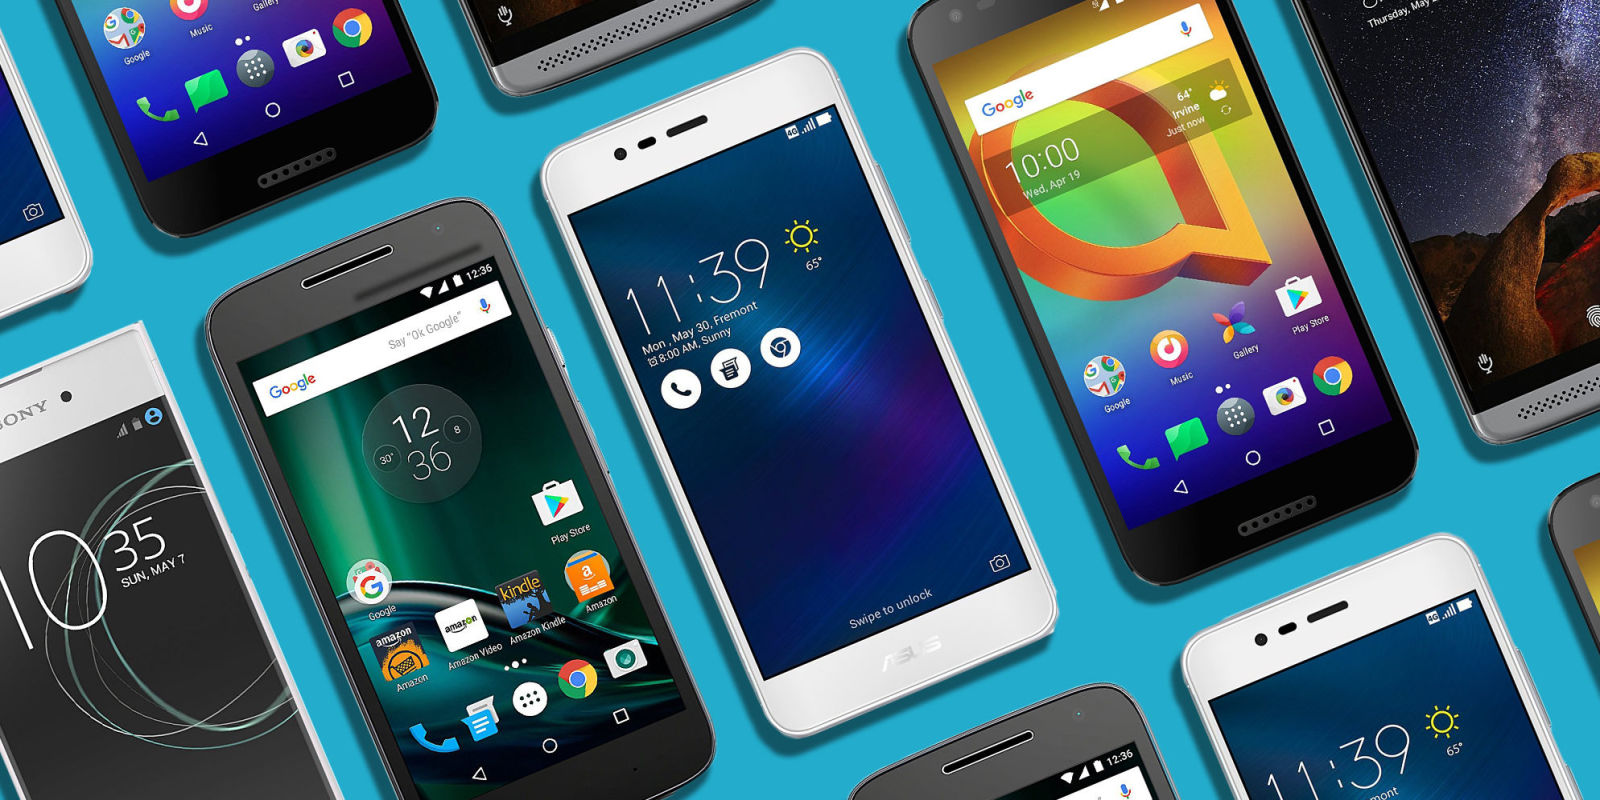 8 Best Phones for Kids in 2018 - Smartphones and Kids Cell Phone Reviews